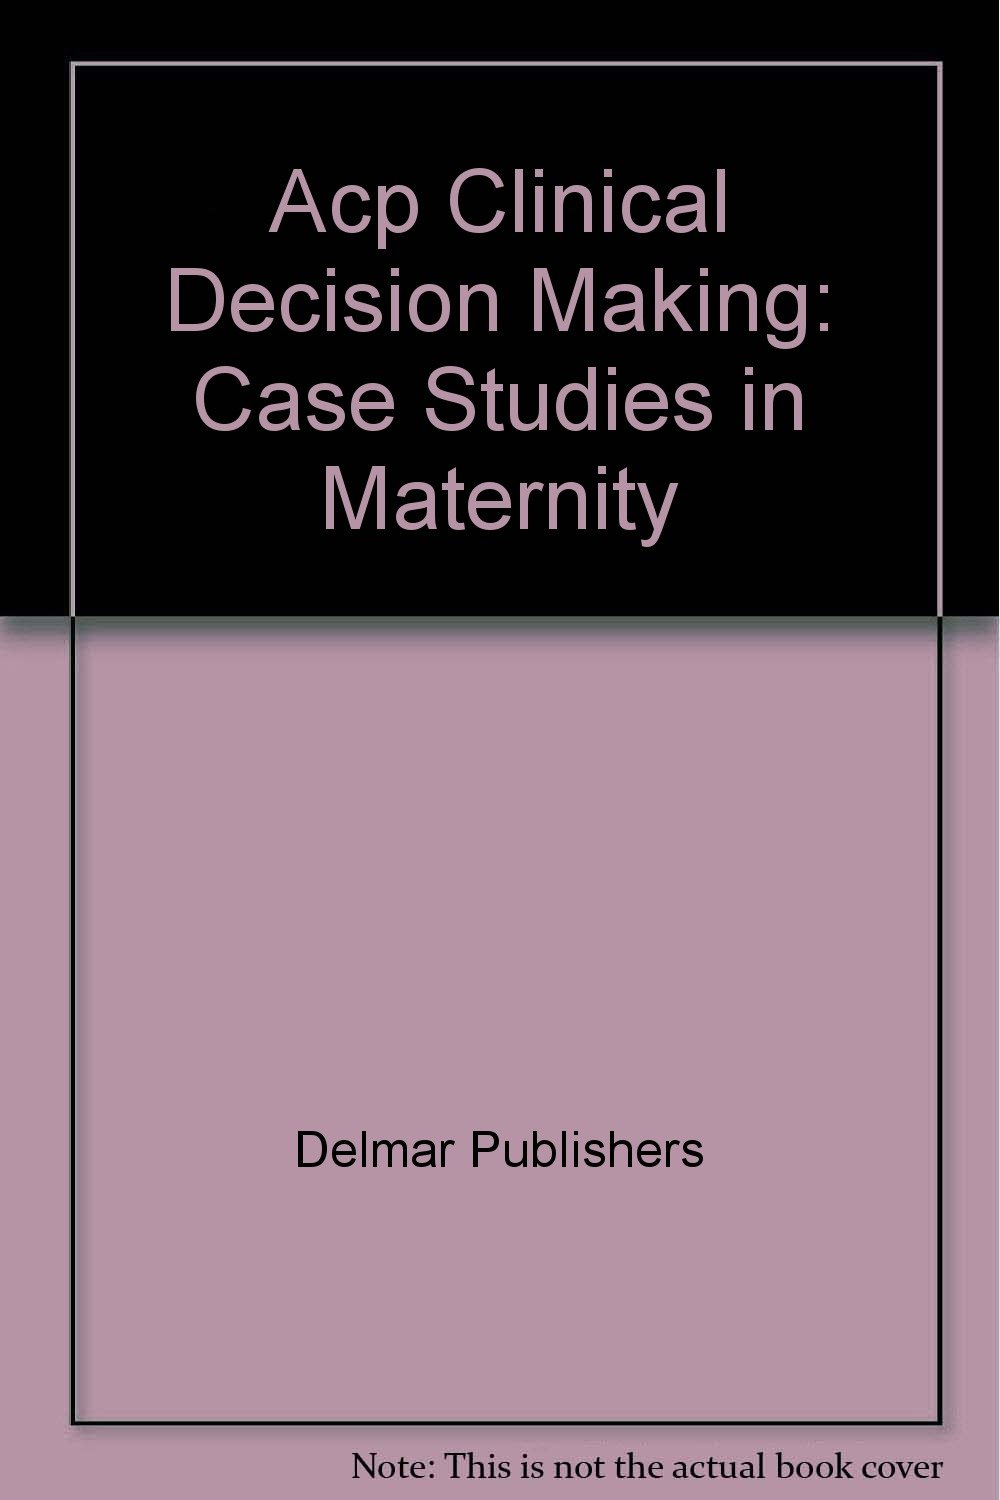 Acp Clinical Decision Making: Case Studies in Maternity